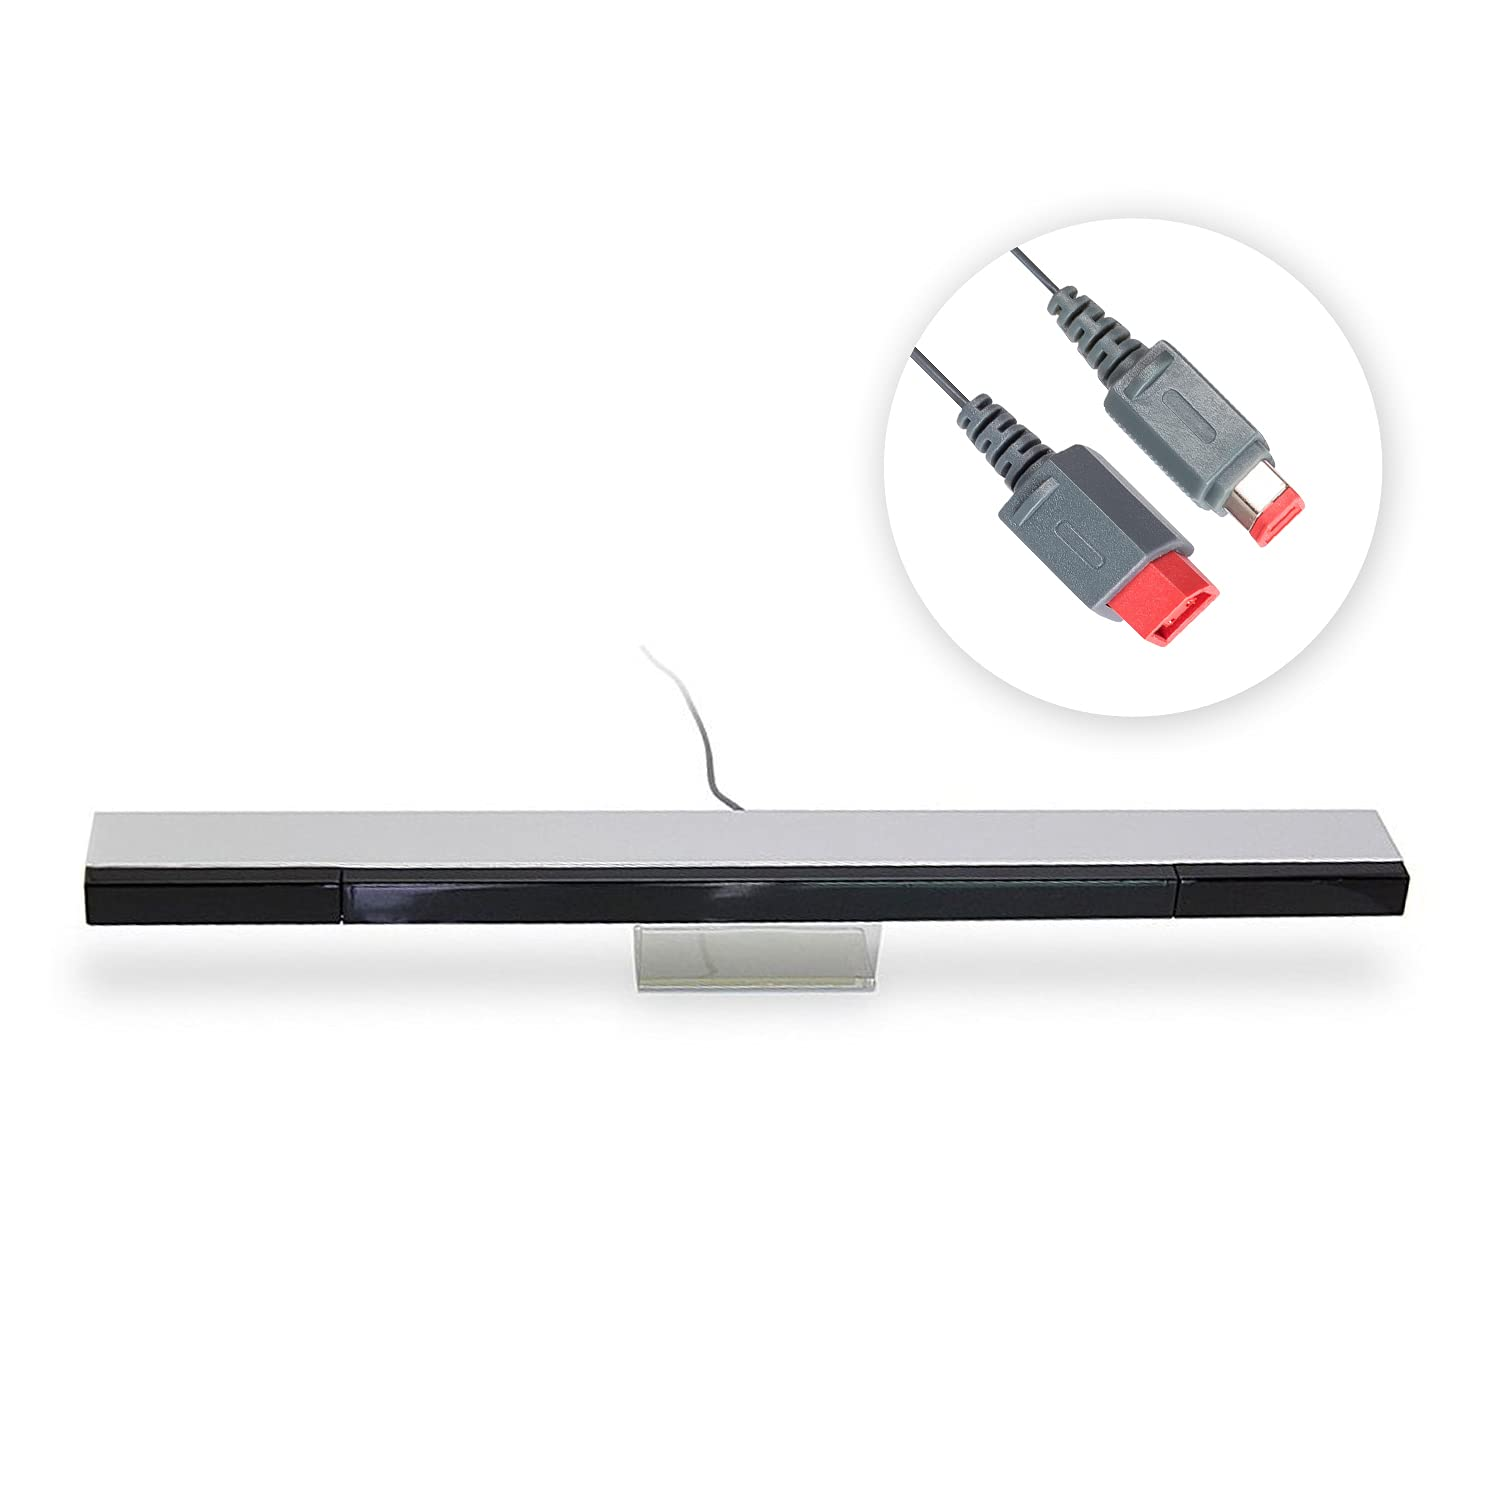 New sales Outstanding EVORETRO Wii Sensor Bar Wide Infrared Receiver Compatibility Wir